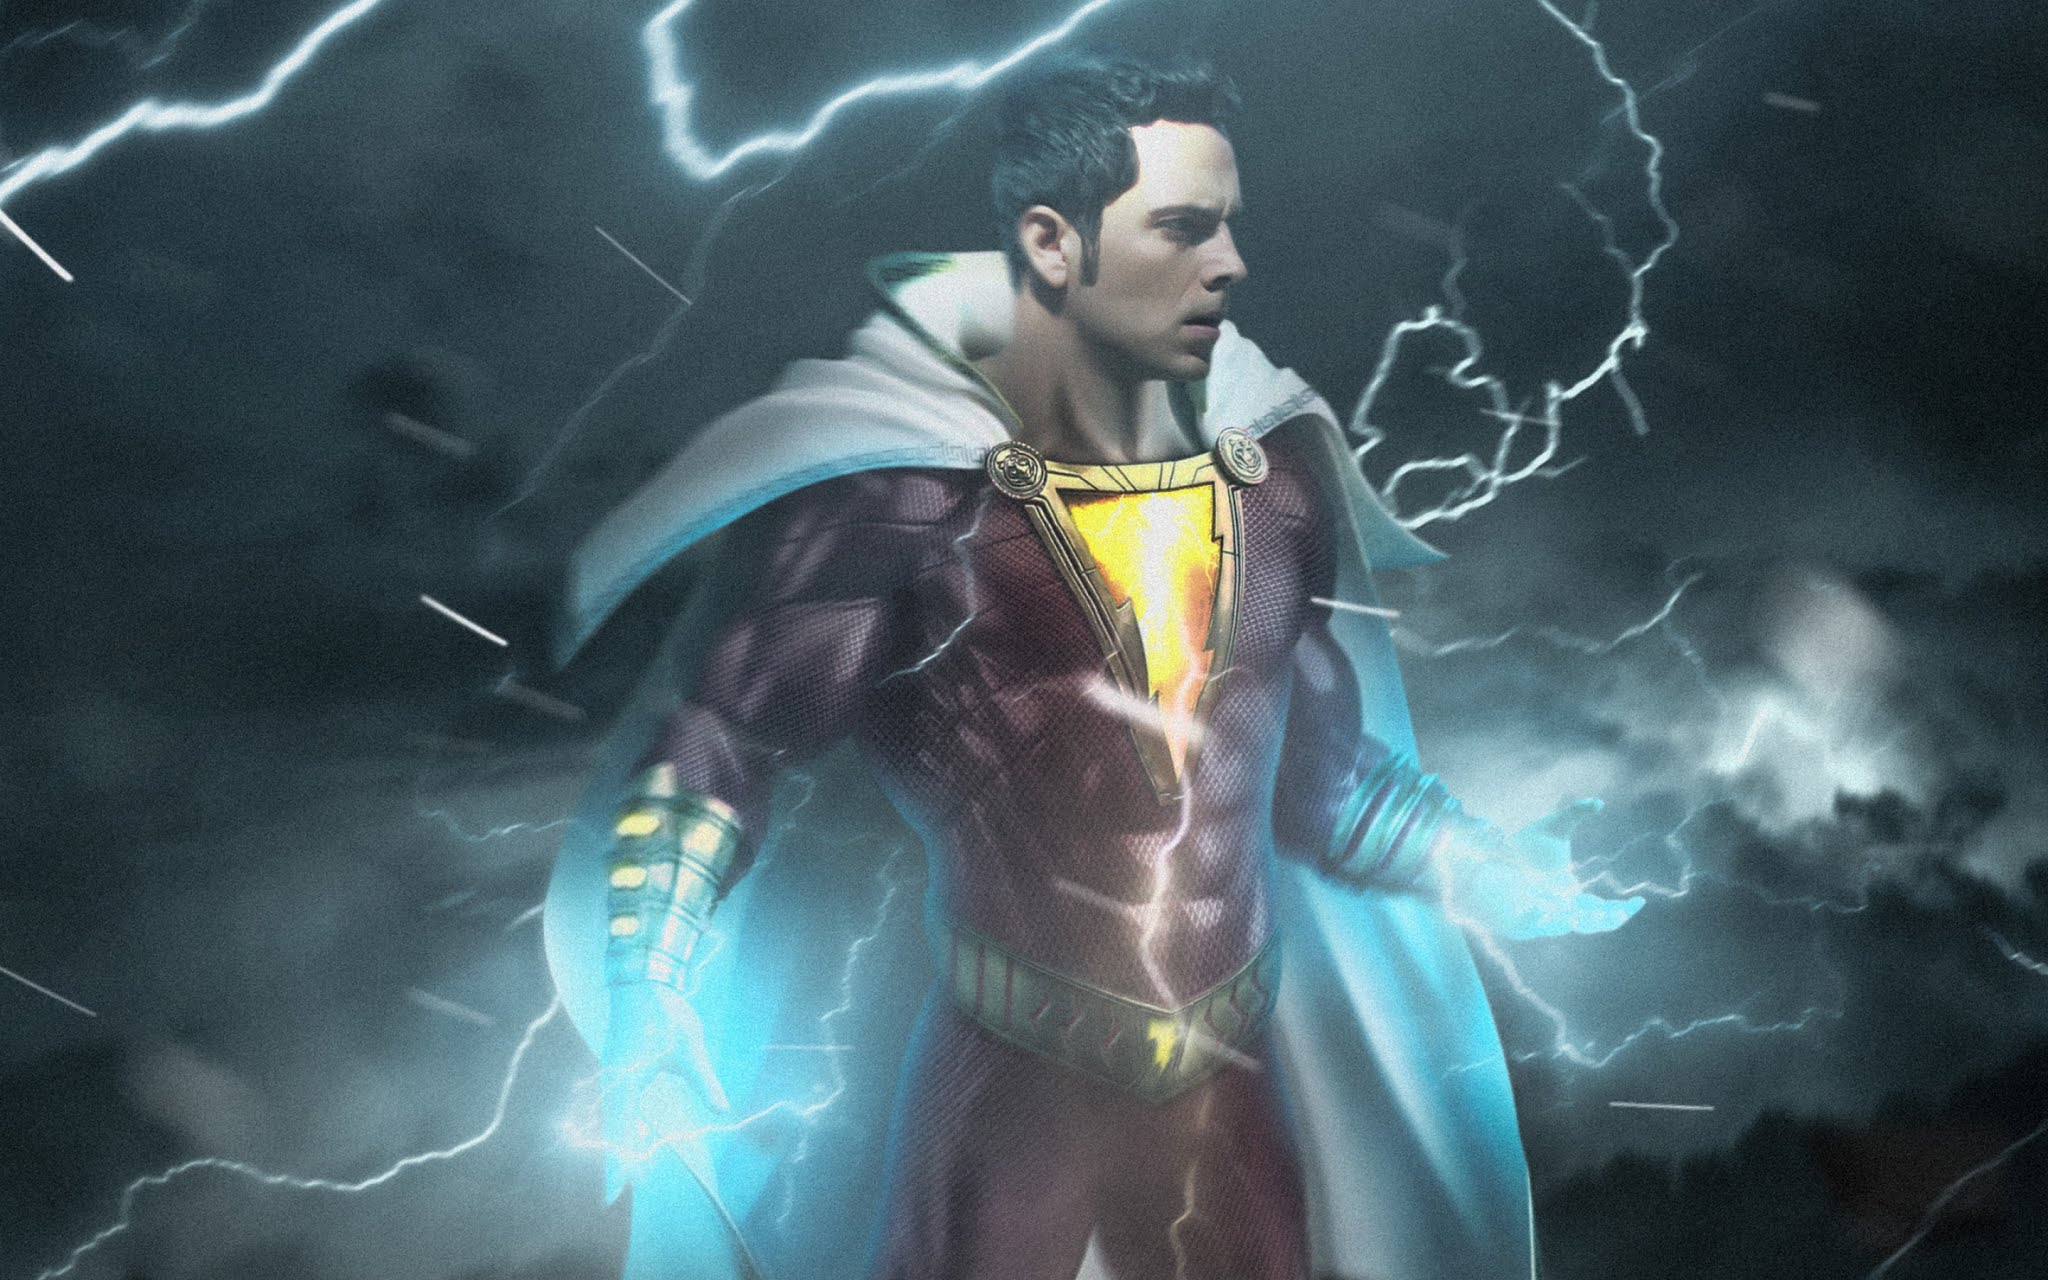 Shazam Wallpaper Hd Xfxwallpapers Free Hd Wallpapers